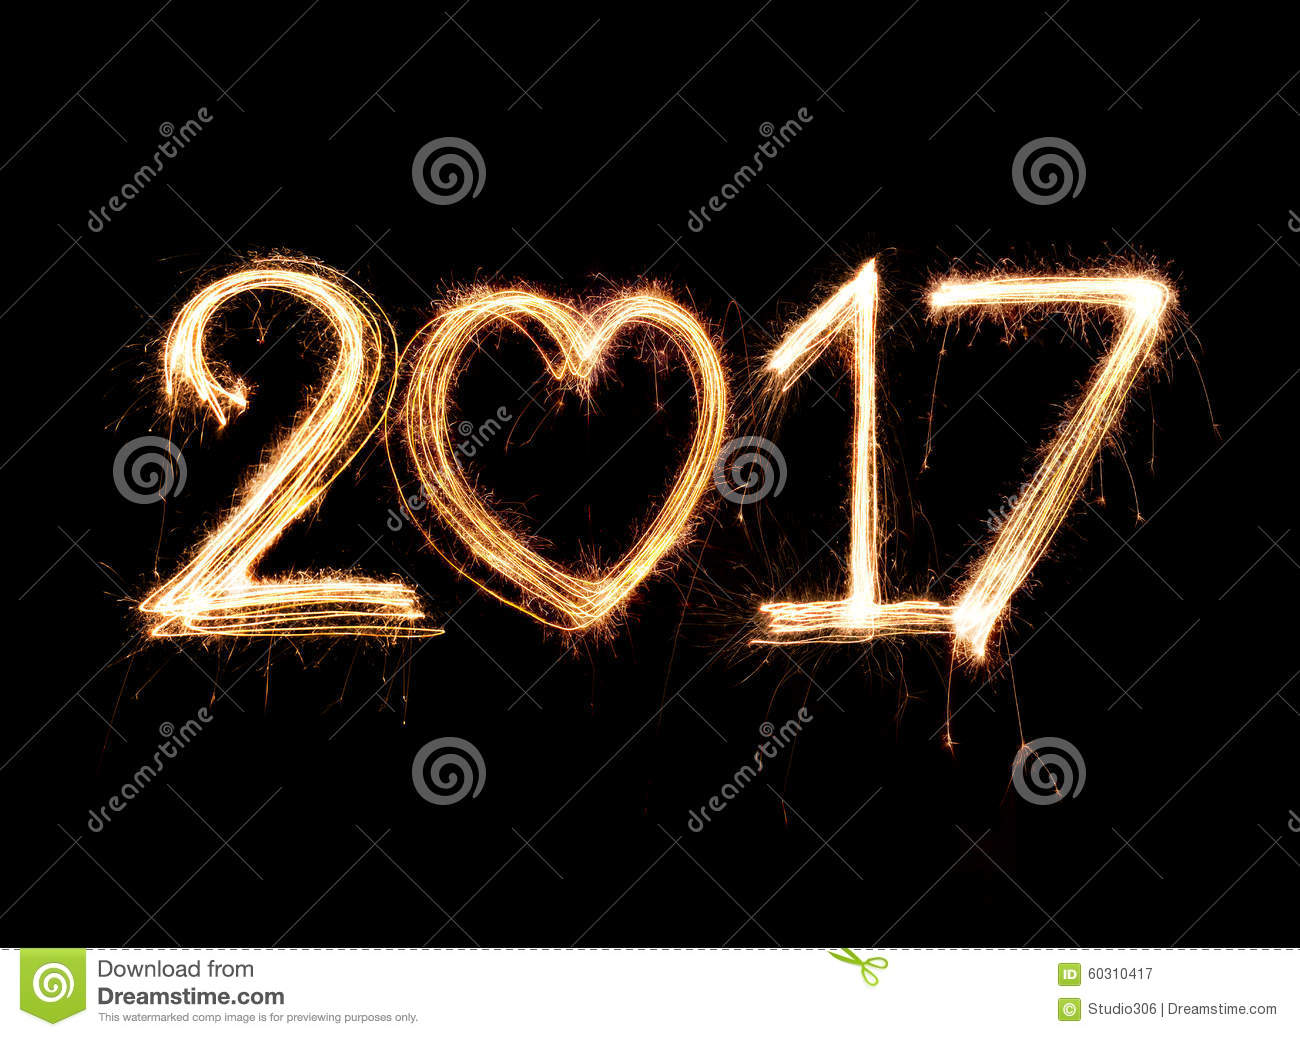 2017 Word Written With Sparkle Firework Stock Photo - Image: 60310417